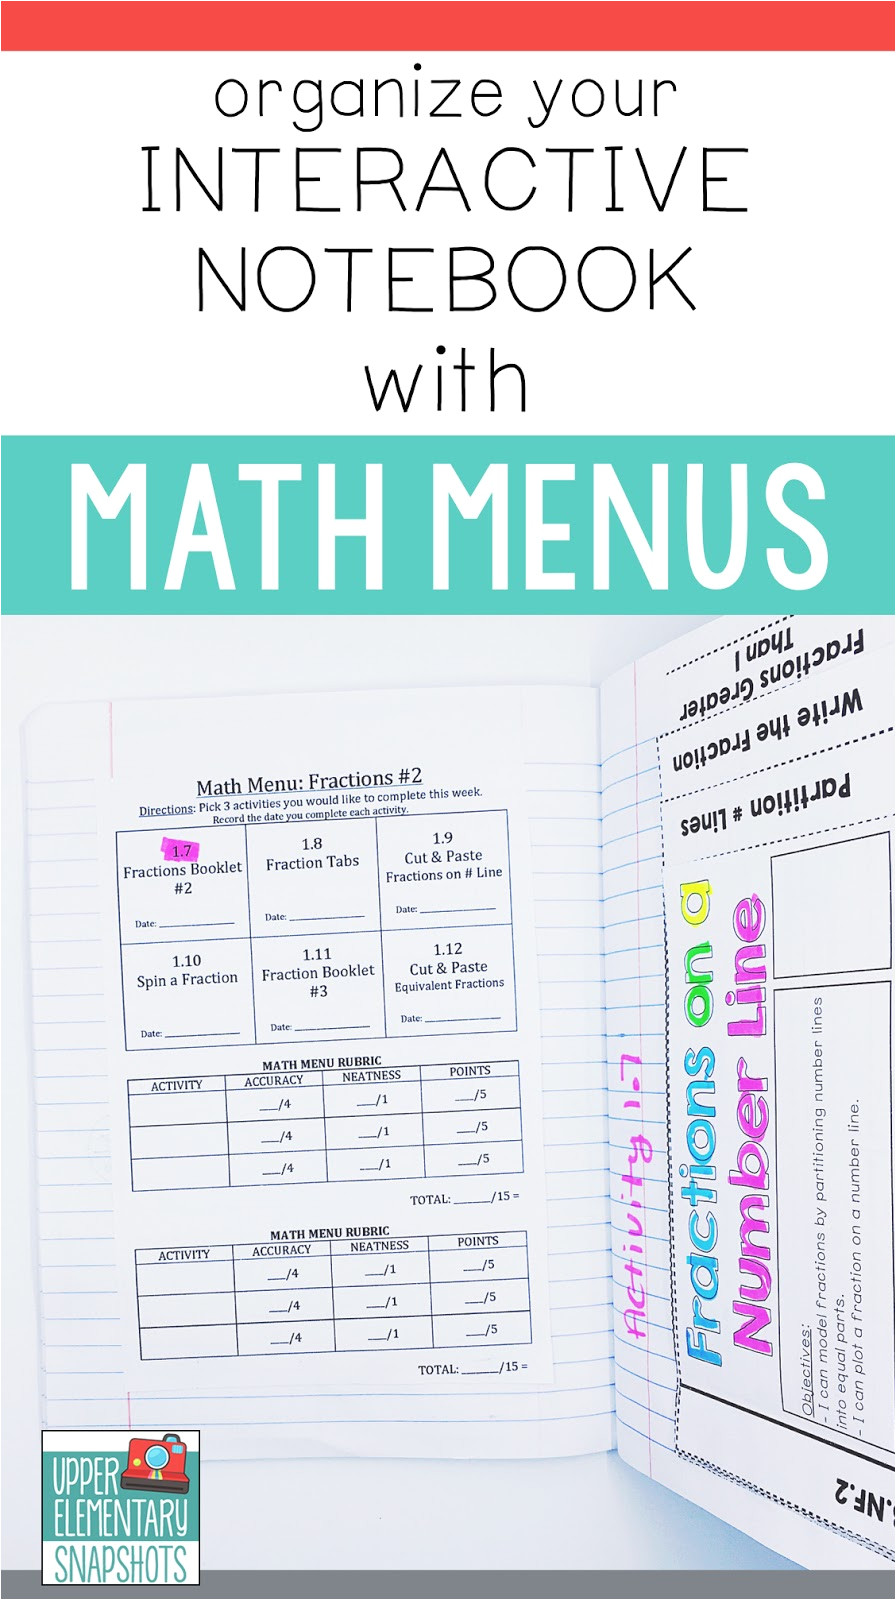 organize your interactive notebook with